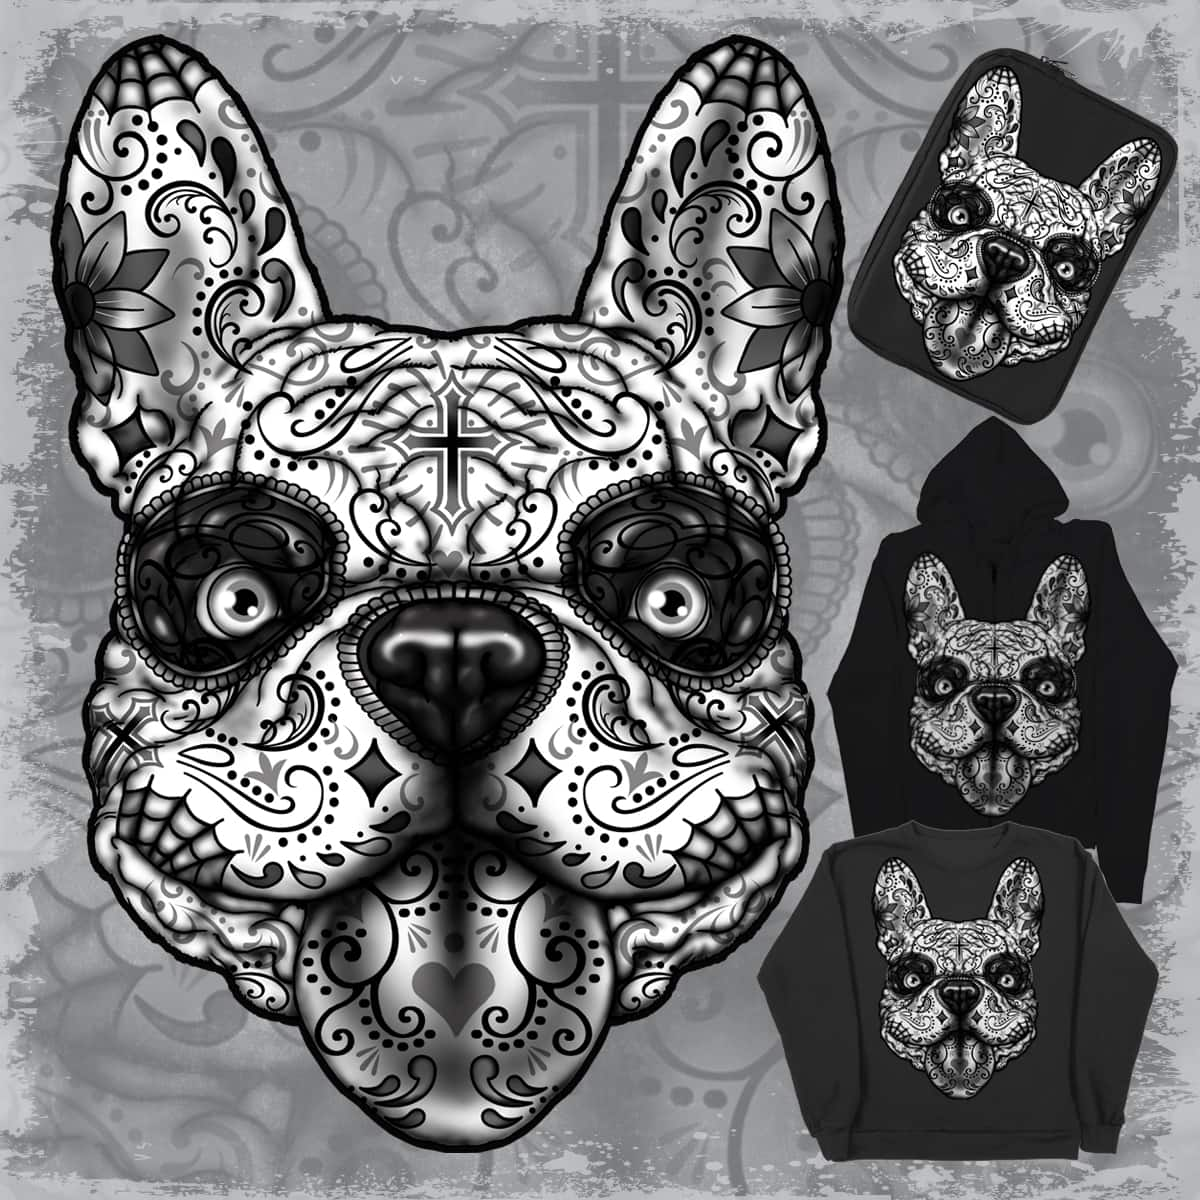 Dia de los Muertos french bulldog  style by miguel montalvo on Threadless